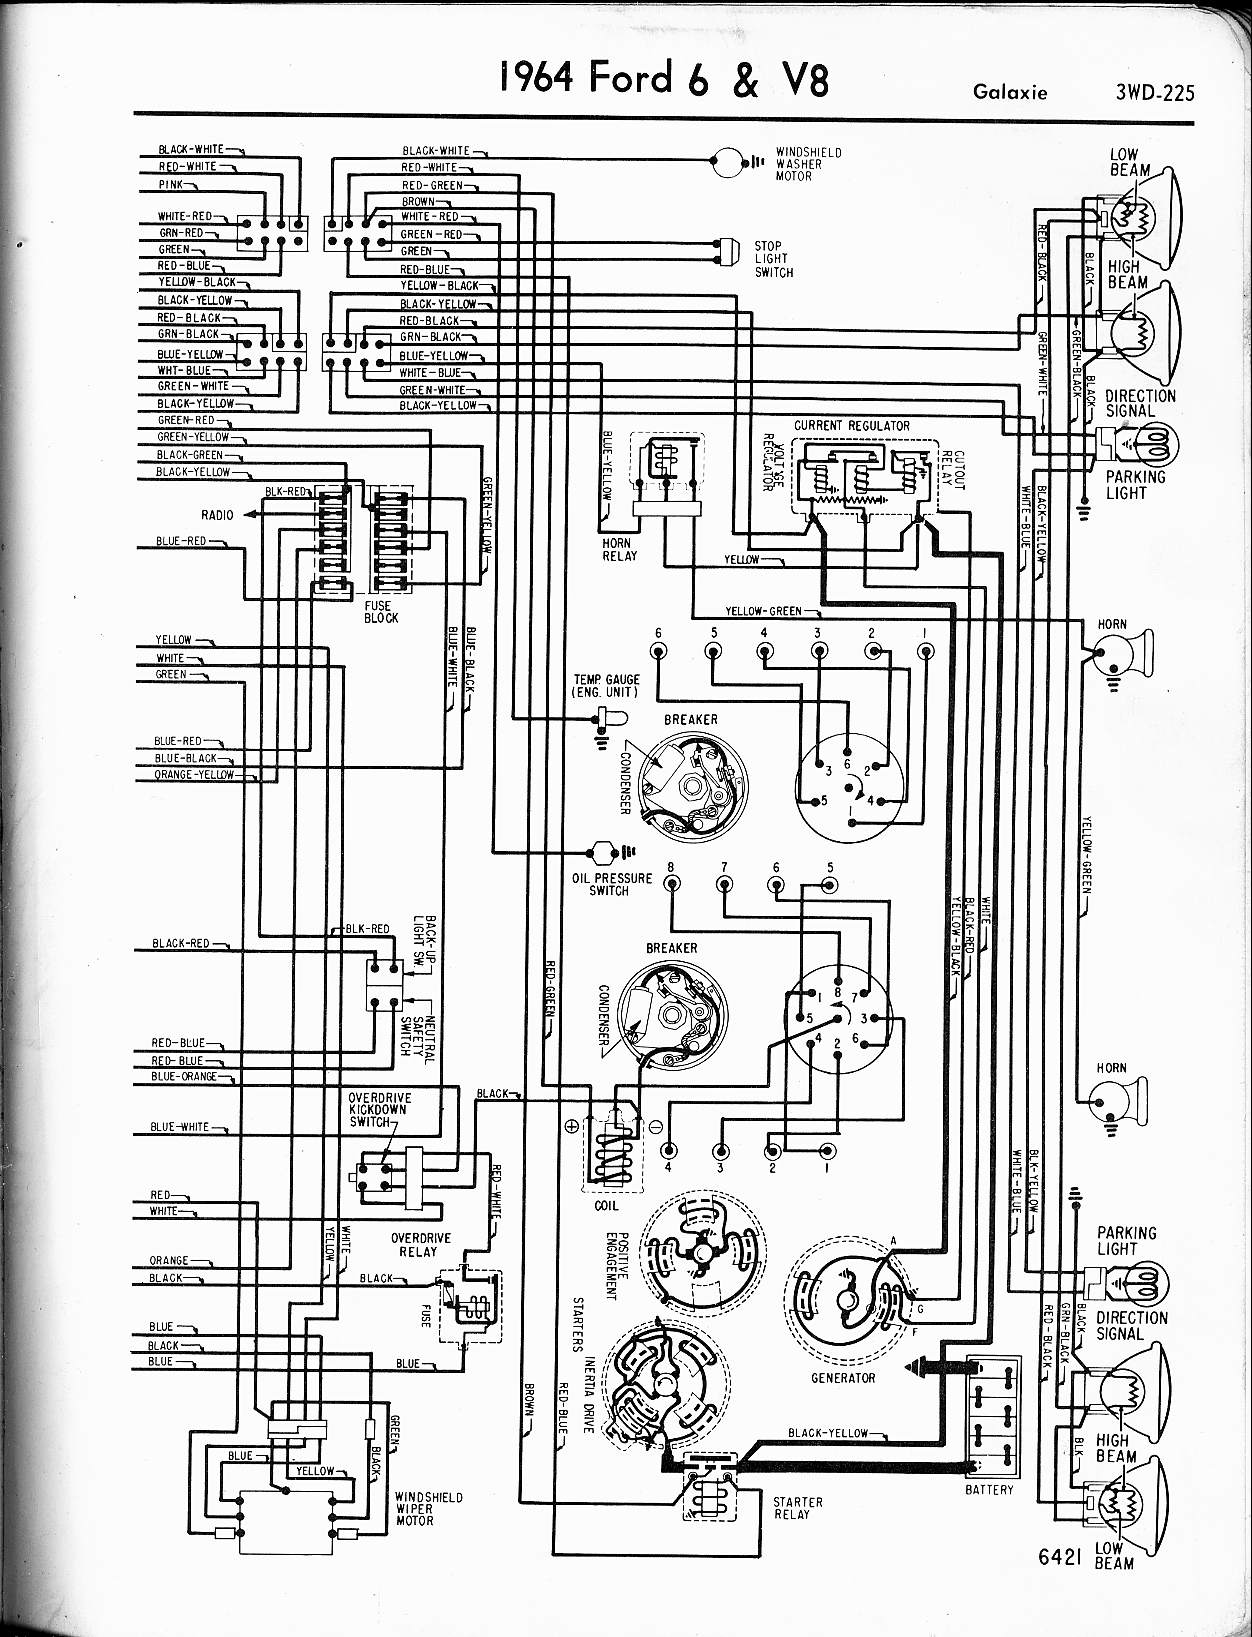 63 ford falcon ignition switch wiring diagram saab 900 ignition wiring diagram wiring diagram